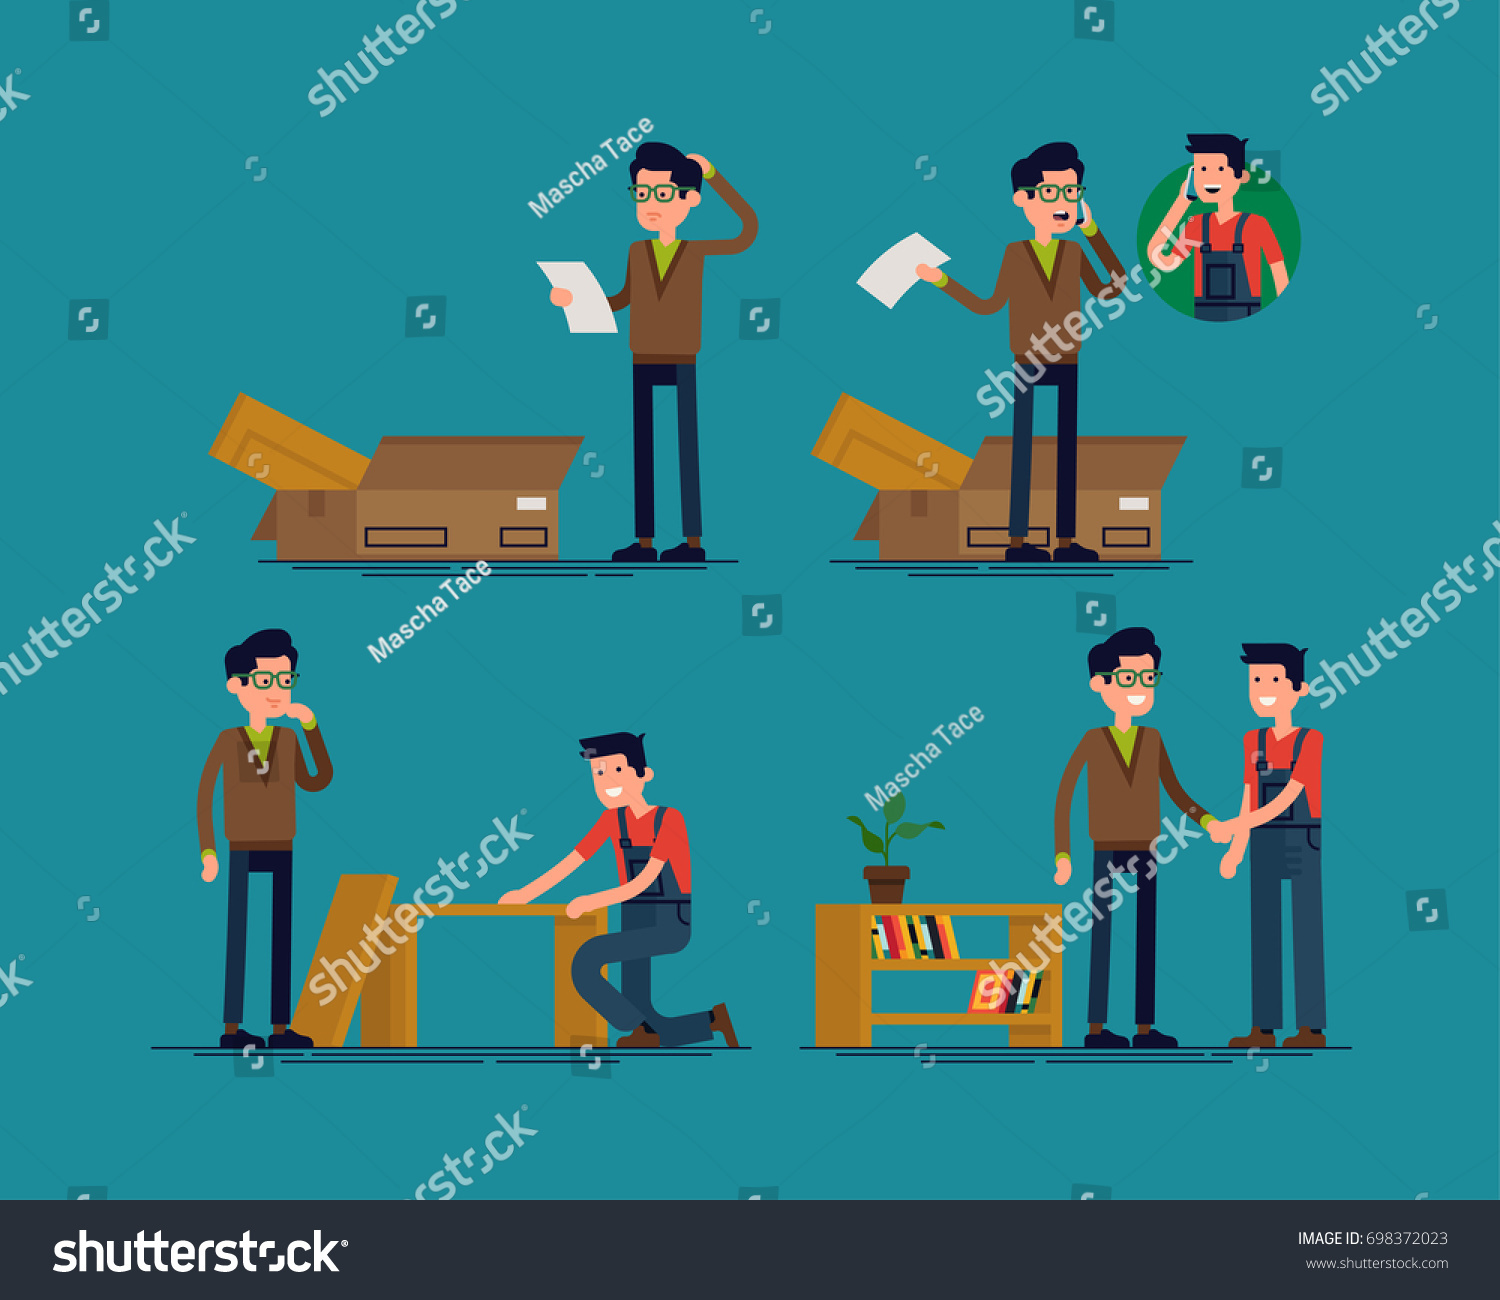 Superb Furniture Assembly Help Vector Concept Illustration With Man Confused By  Assembly Instruction And Receiving Help From